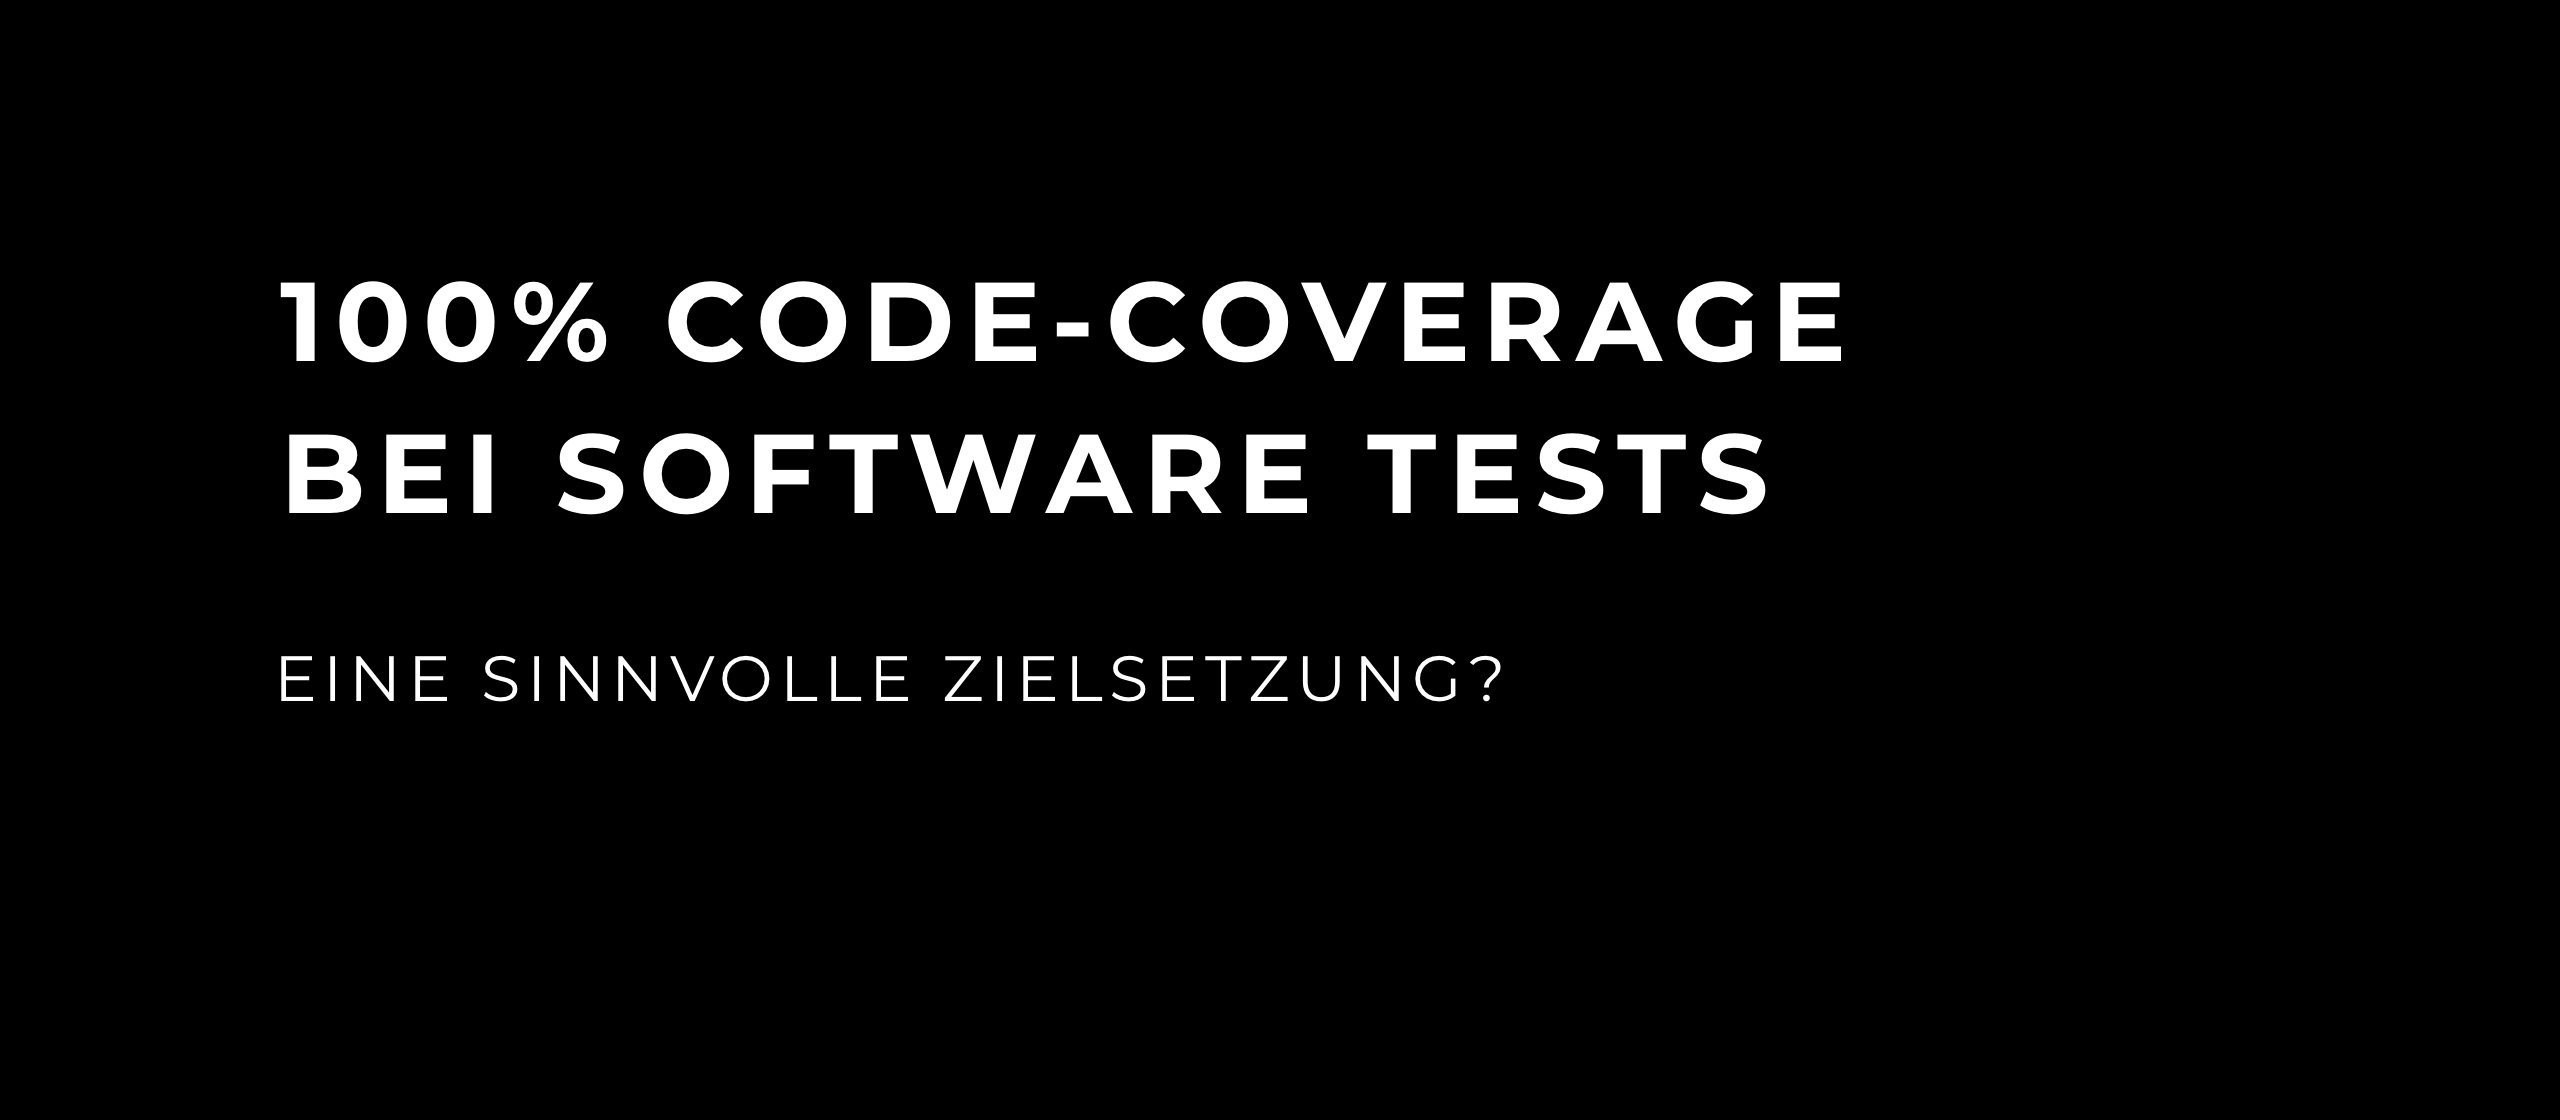 let's dev Blog | 100% Code-Coverage bei Software Tests – eine sinnvolle Zielsetzung?